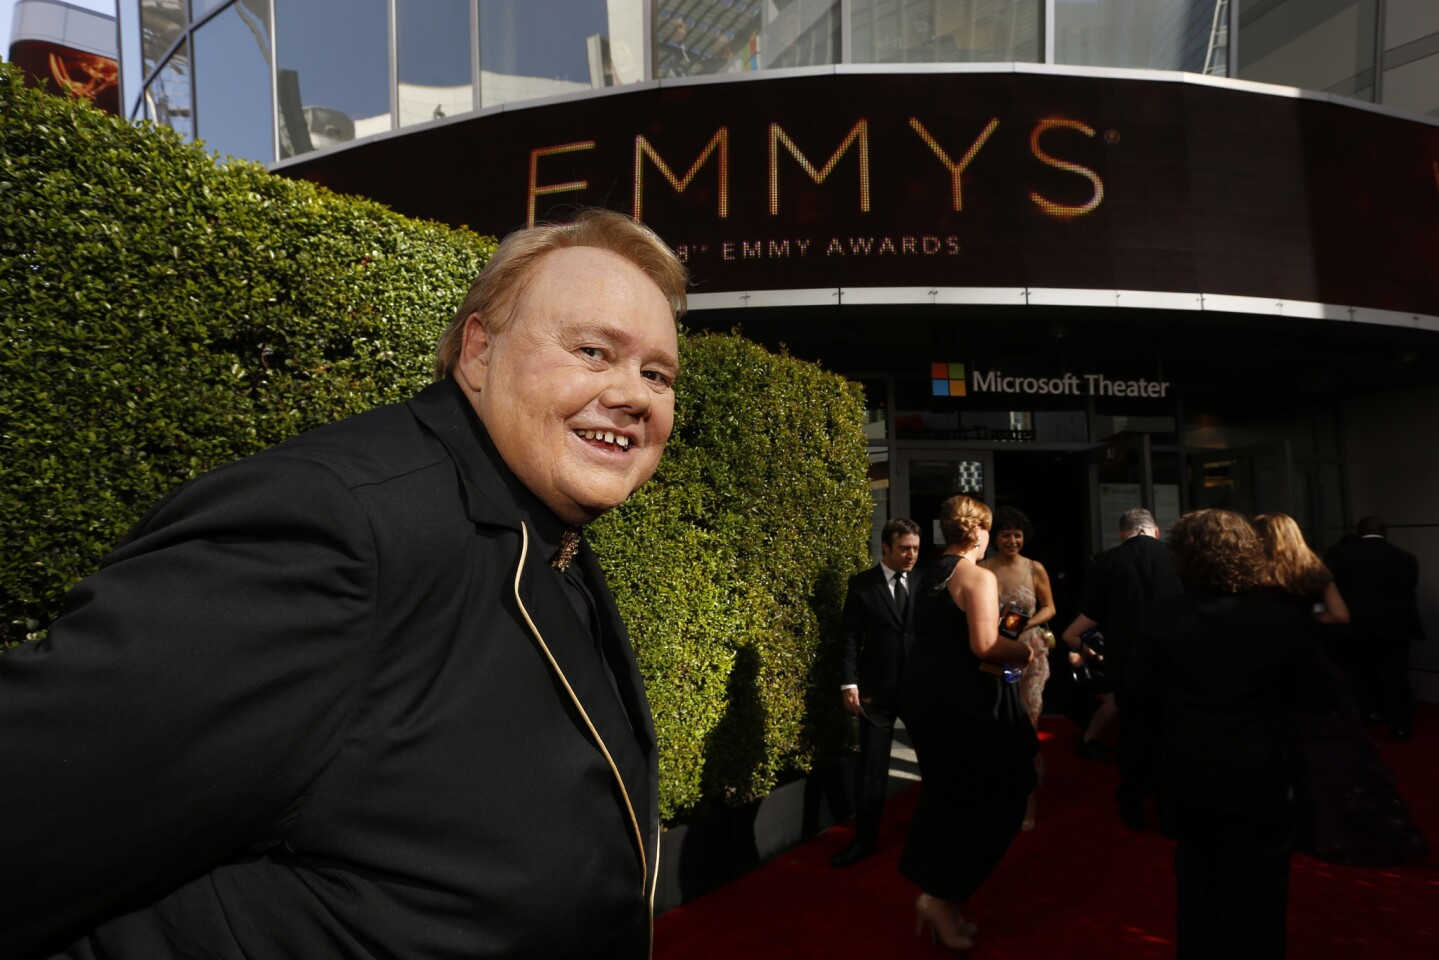 Emmys 2016: Candid photos from the red carpet